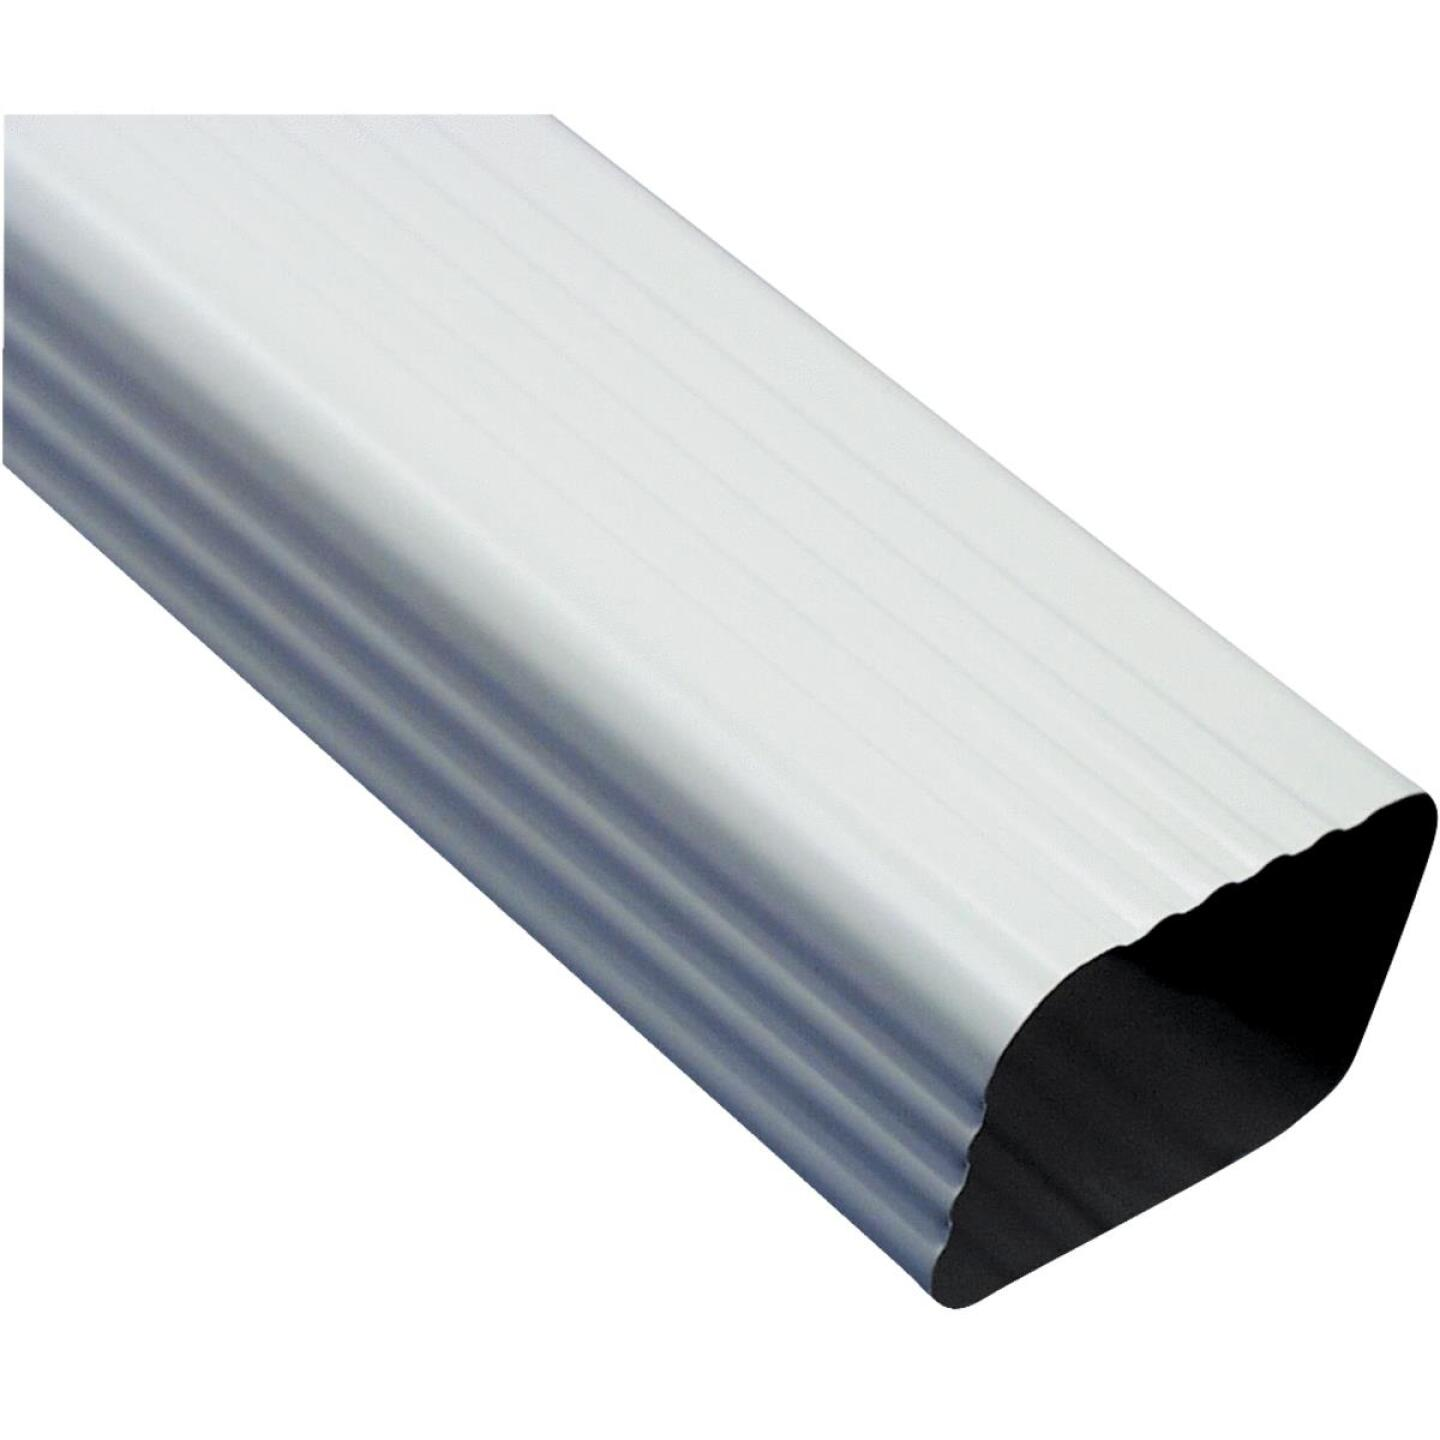 Amerimax 2 In. x 3 In. White Galvanized Downspout Image 1